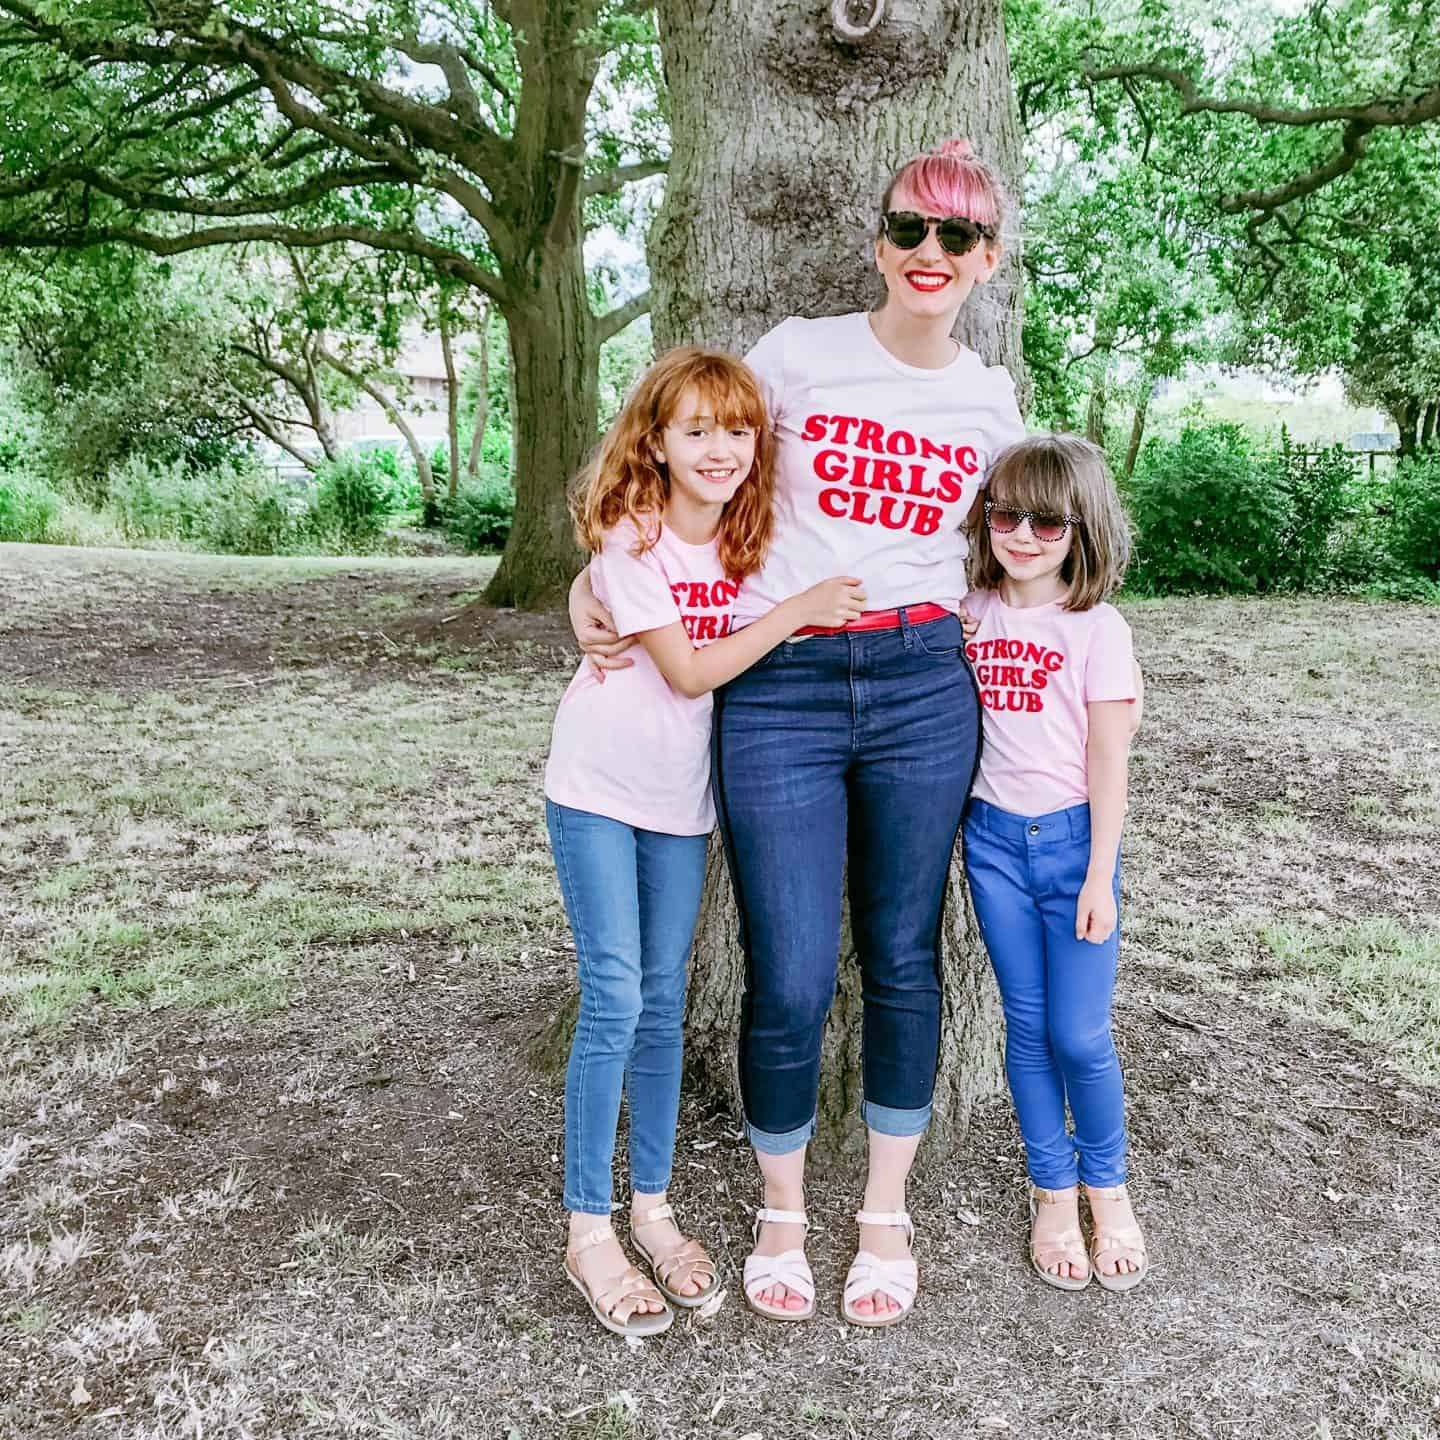 Wearing organic, ethical empowerment Strong Girls Club T-shirts